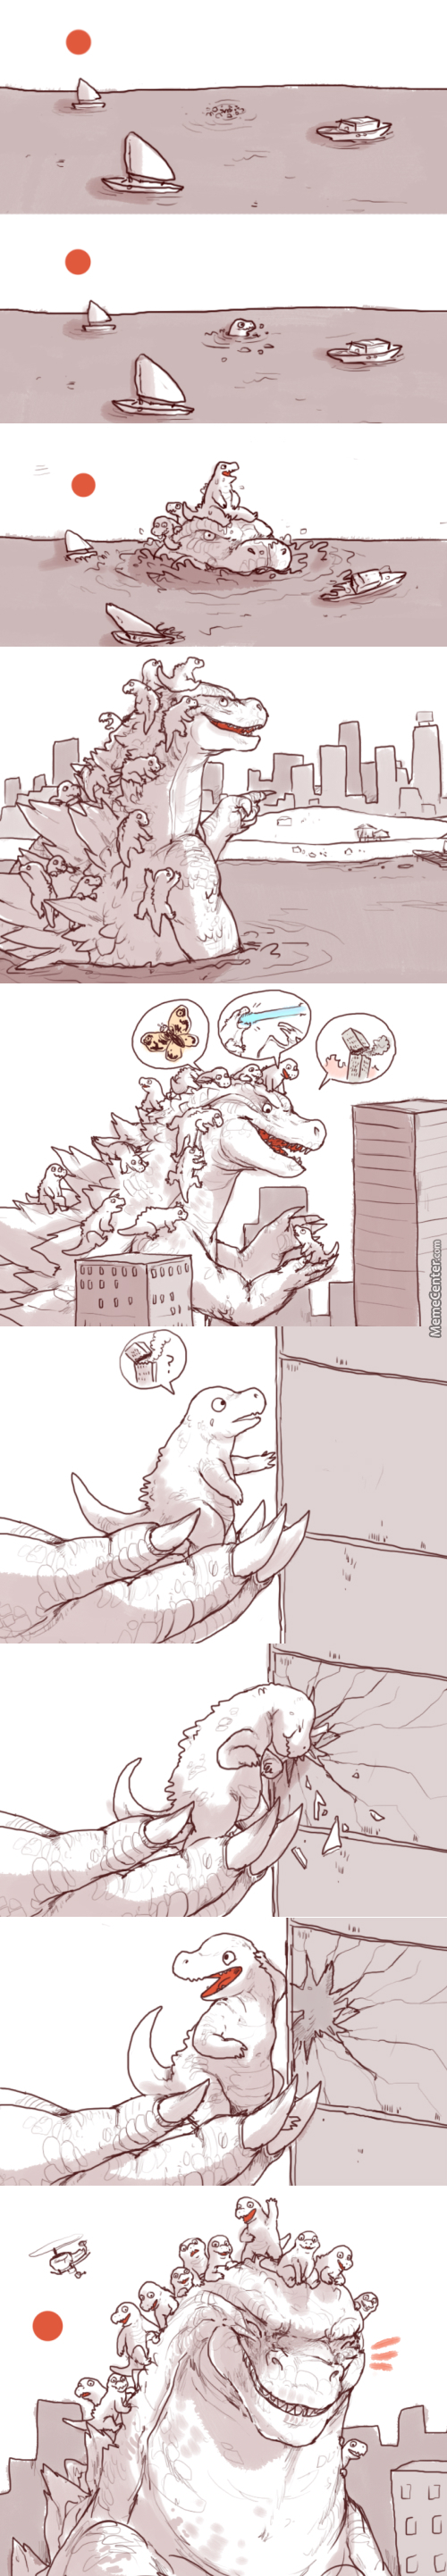 Godzilla Taking His Kids Out